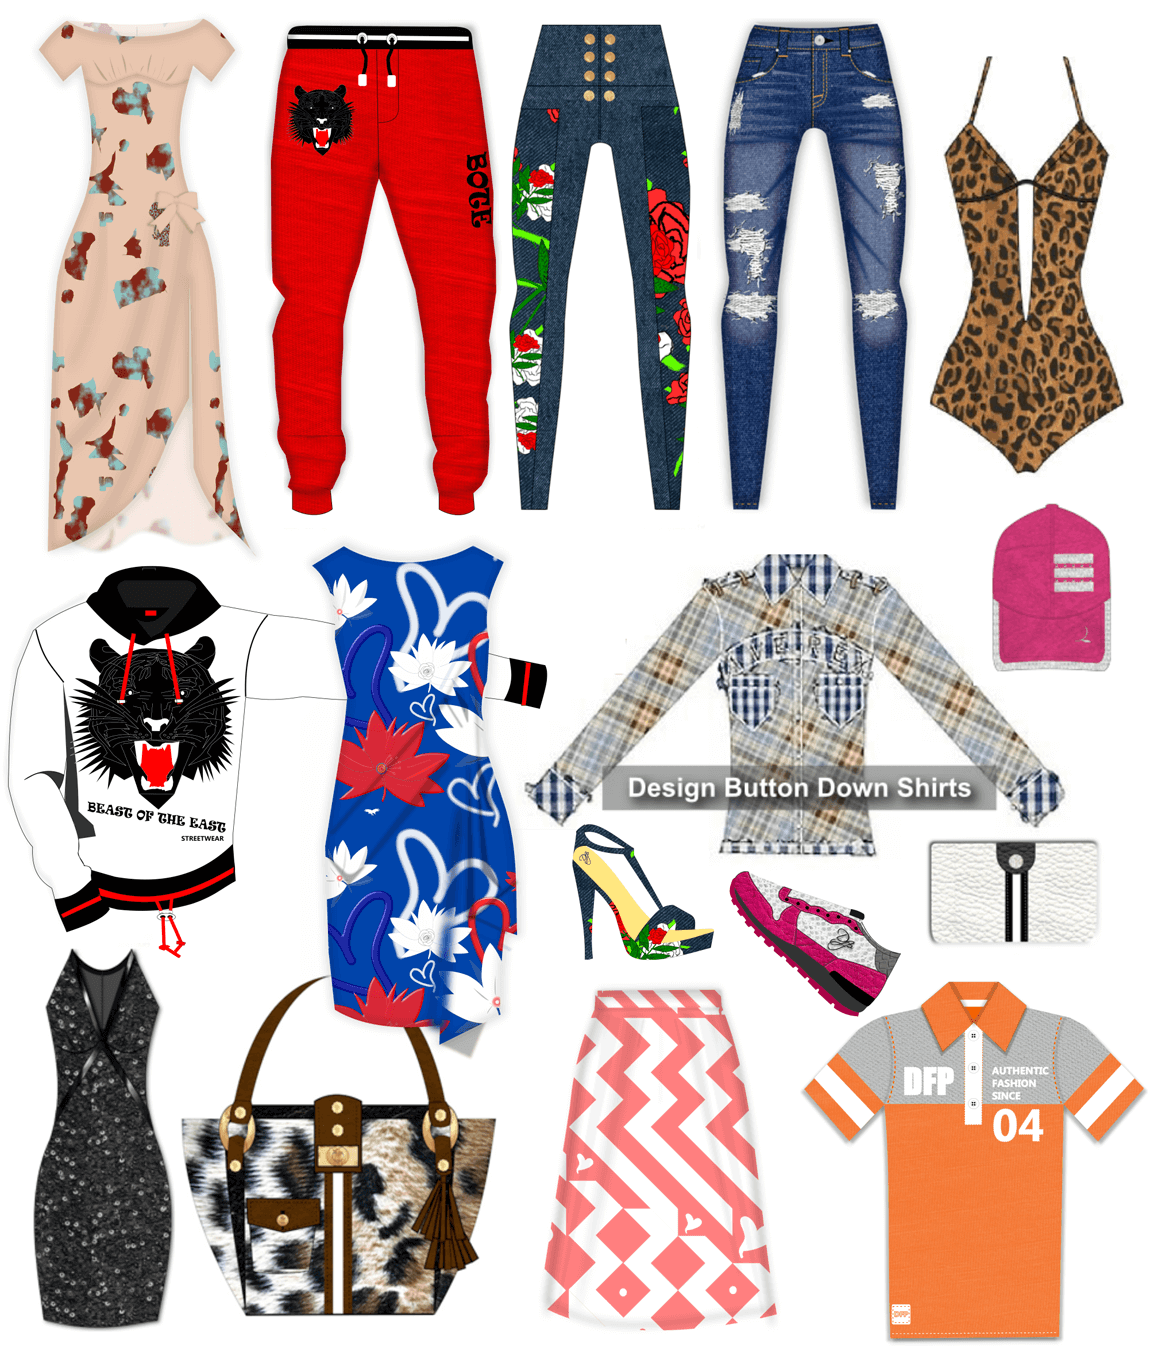 Digital Fashion Pro Clothing Templates Upgrades Libraries And Add Ons